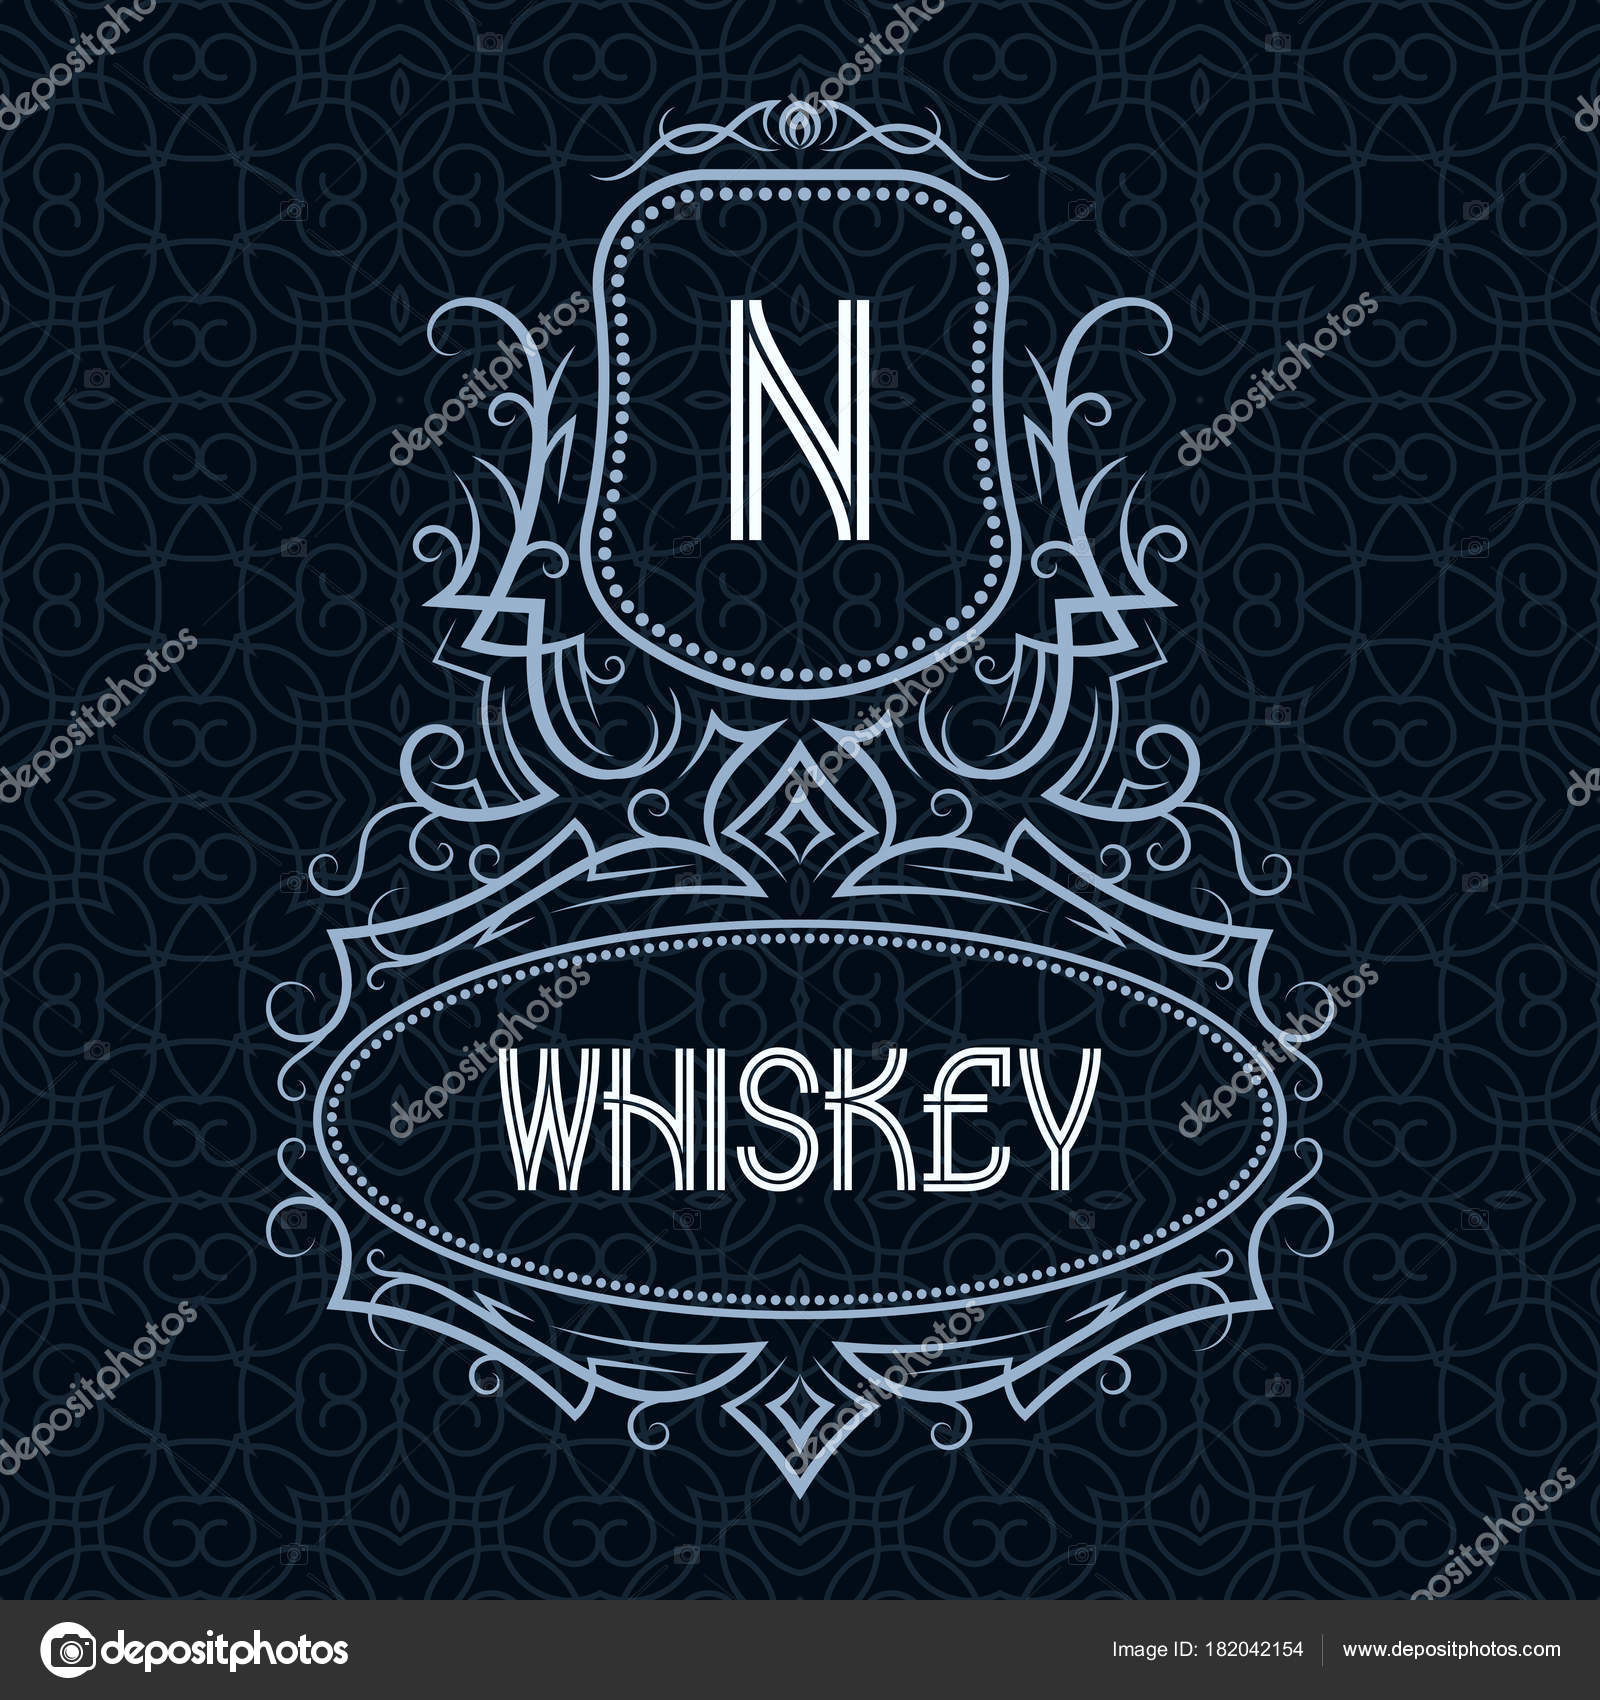 Whiskey Label Design Template Patterned Vintage Monogram With Text On Seamless Pattern Background